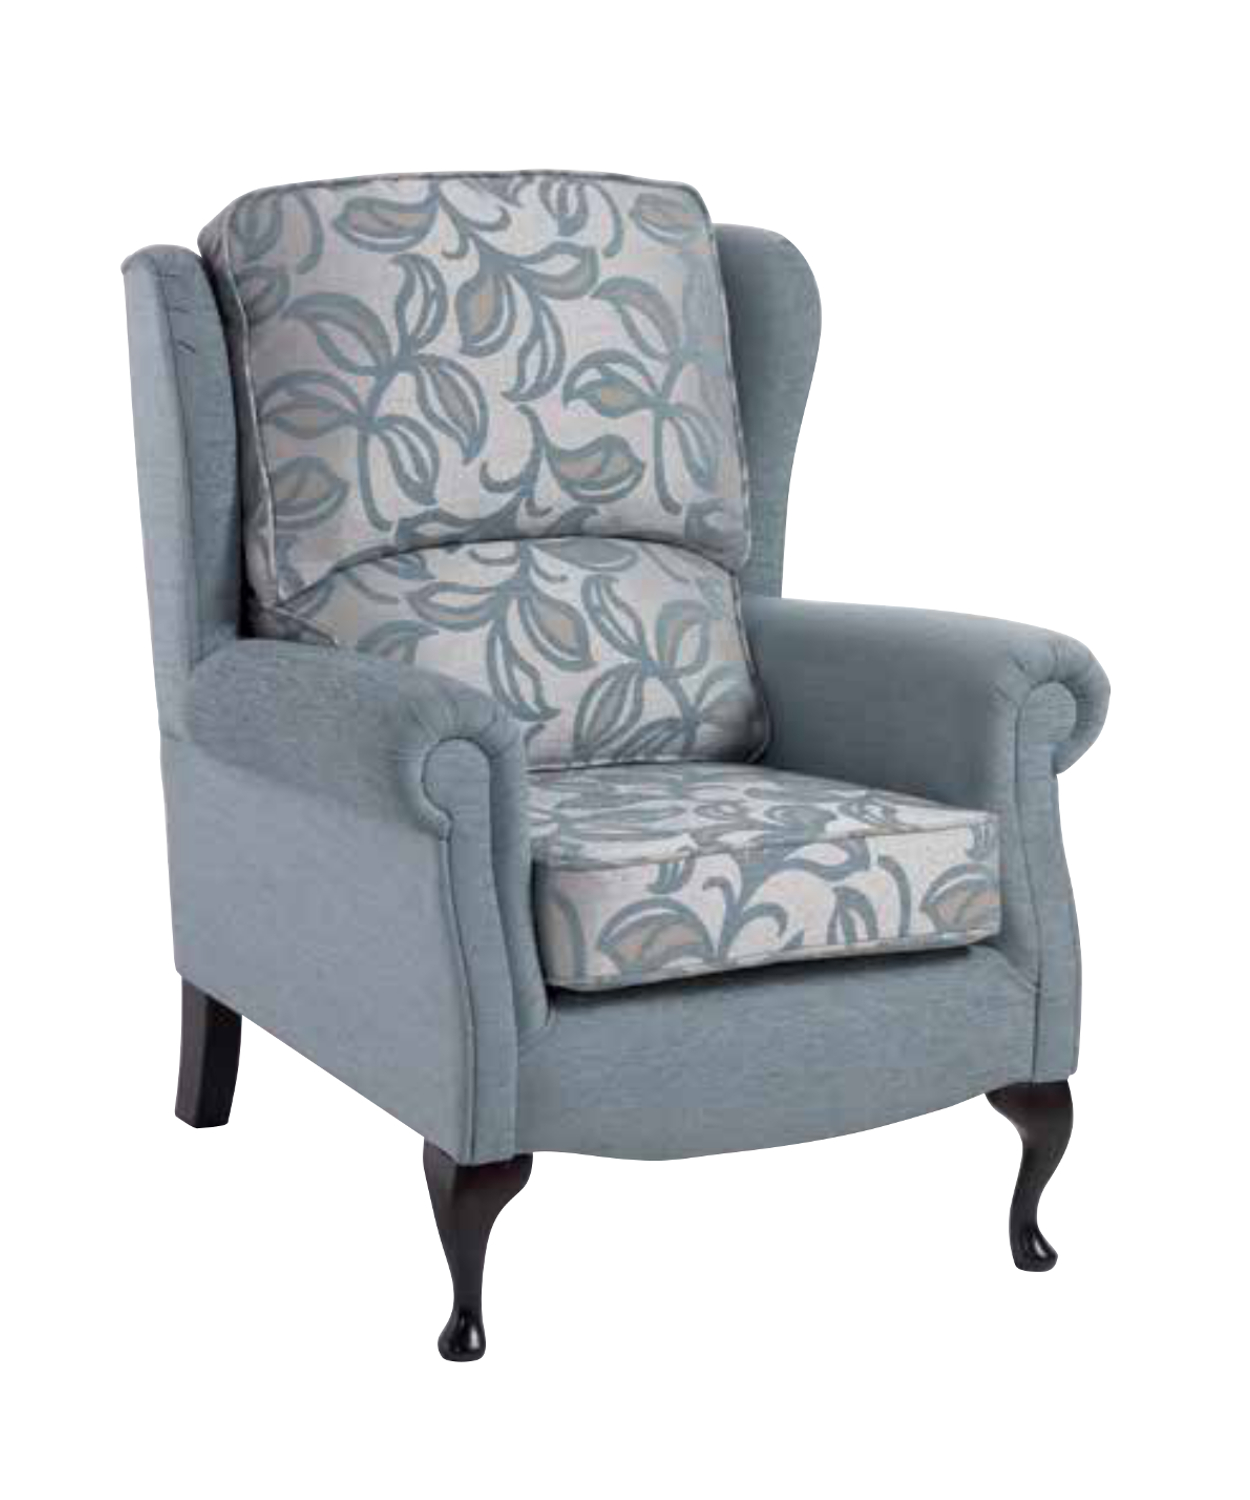 british mobility chairs chair covers for spandex bedale fireside the finest crafsmanship at